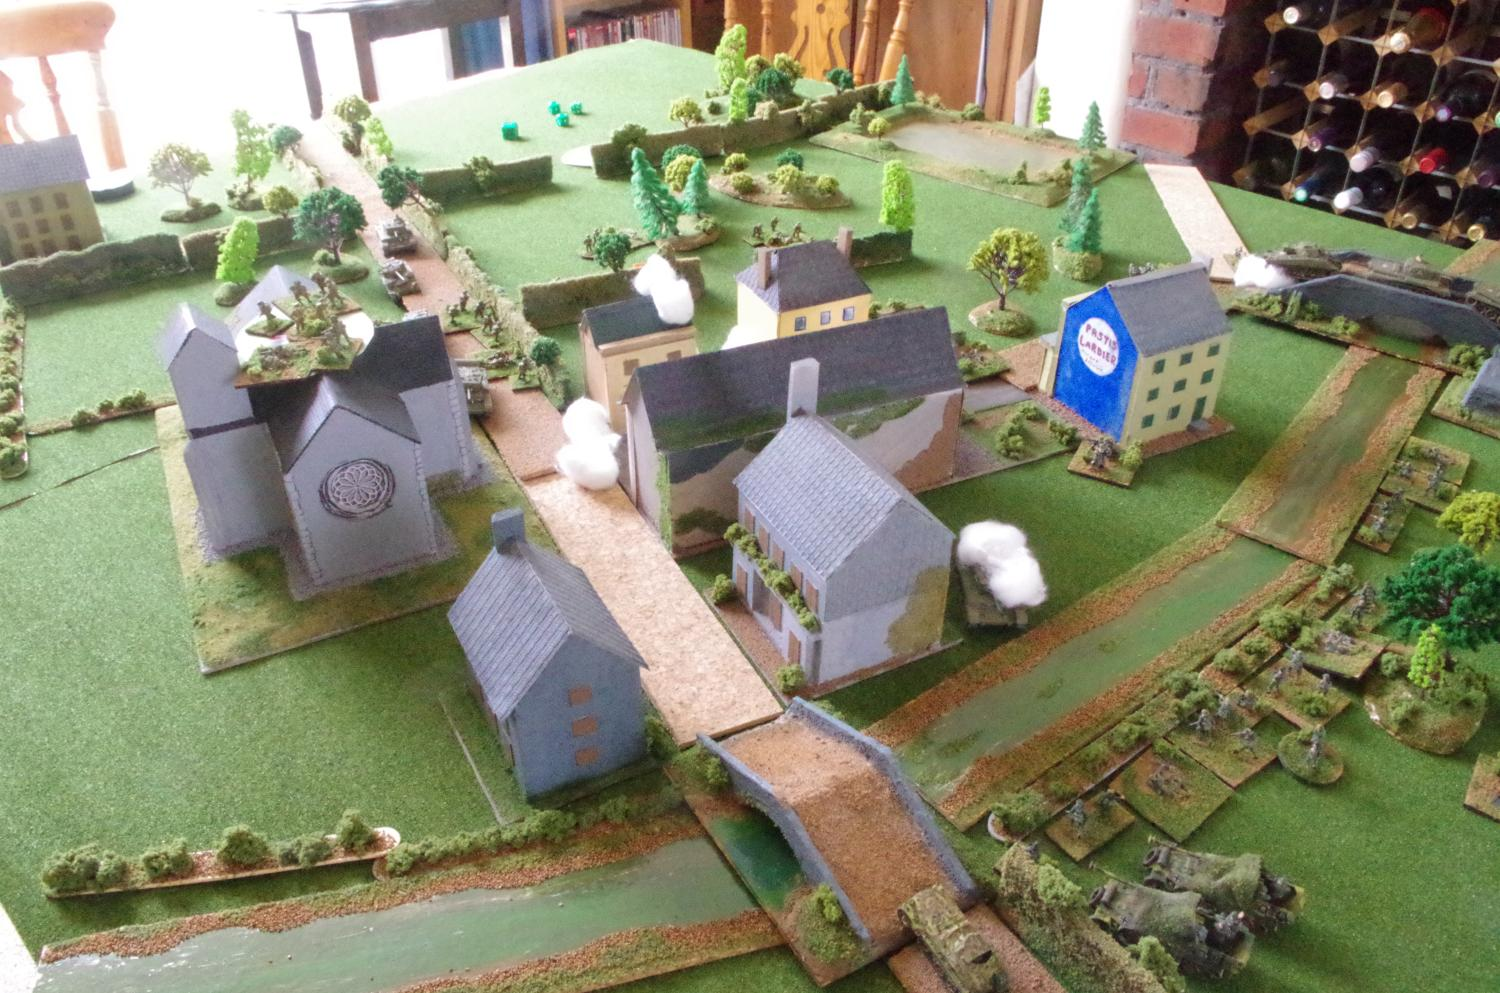 The British get bogged down as the village starts to burn